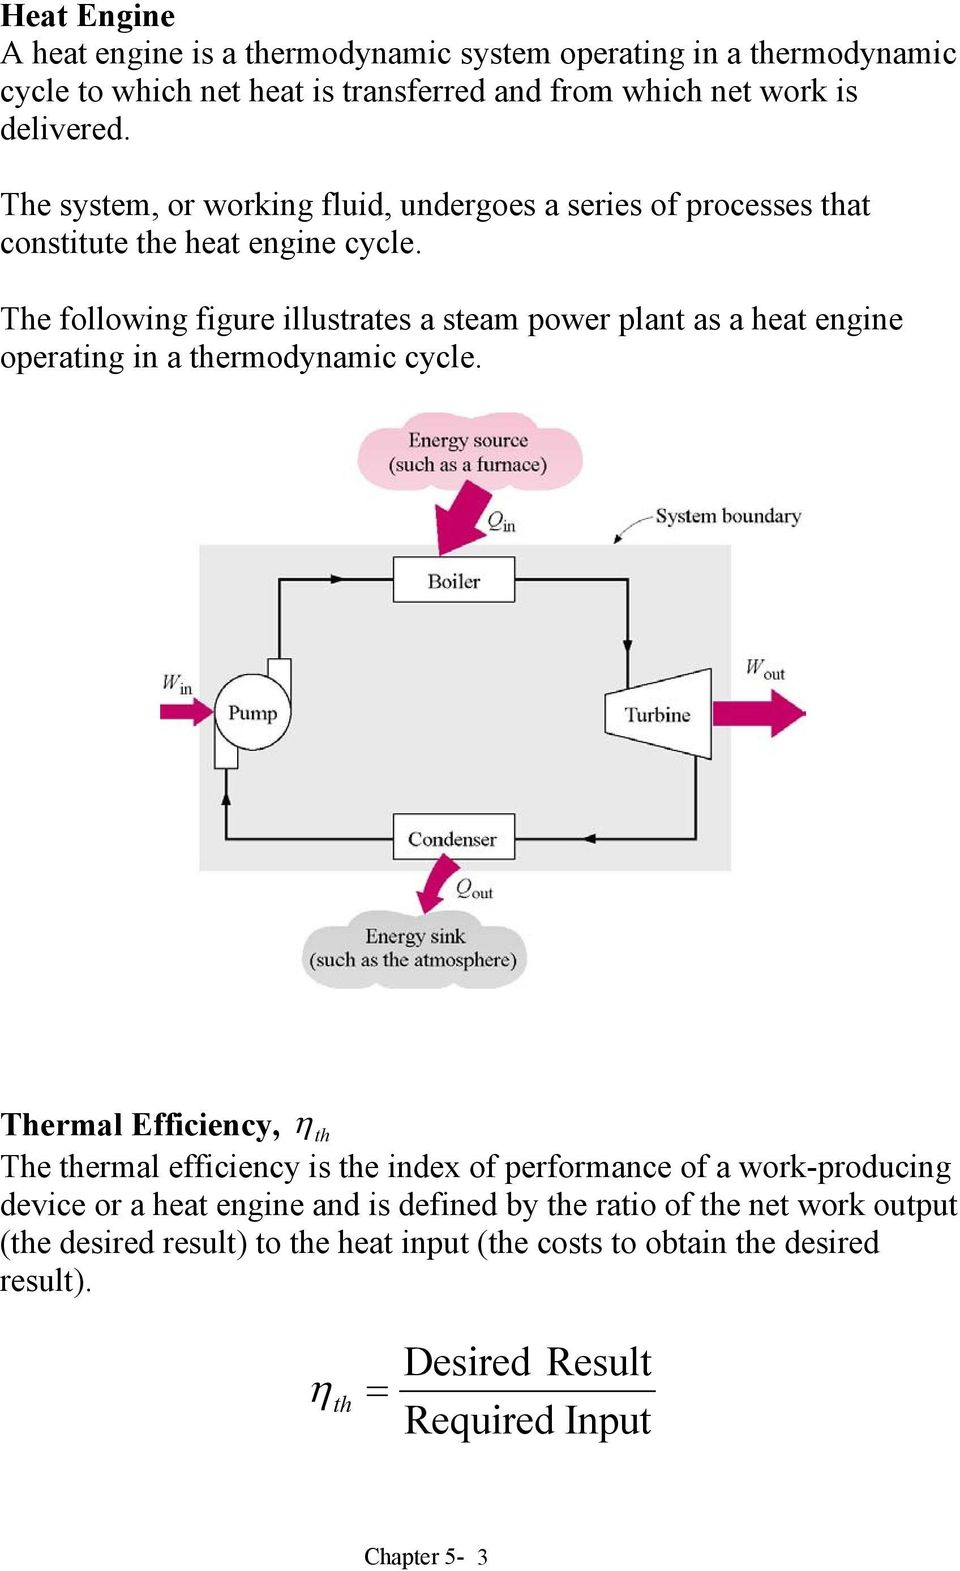 he following figure illustrates a steam power plant as a heat engine operating in a thermodynamic cycle.